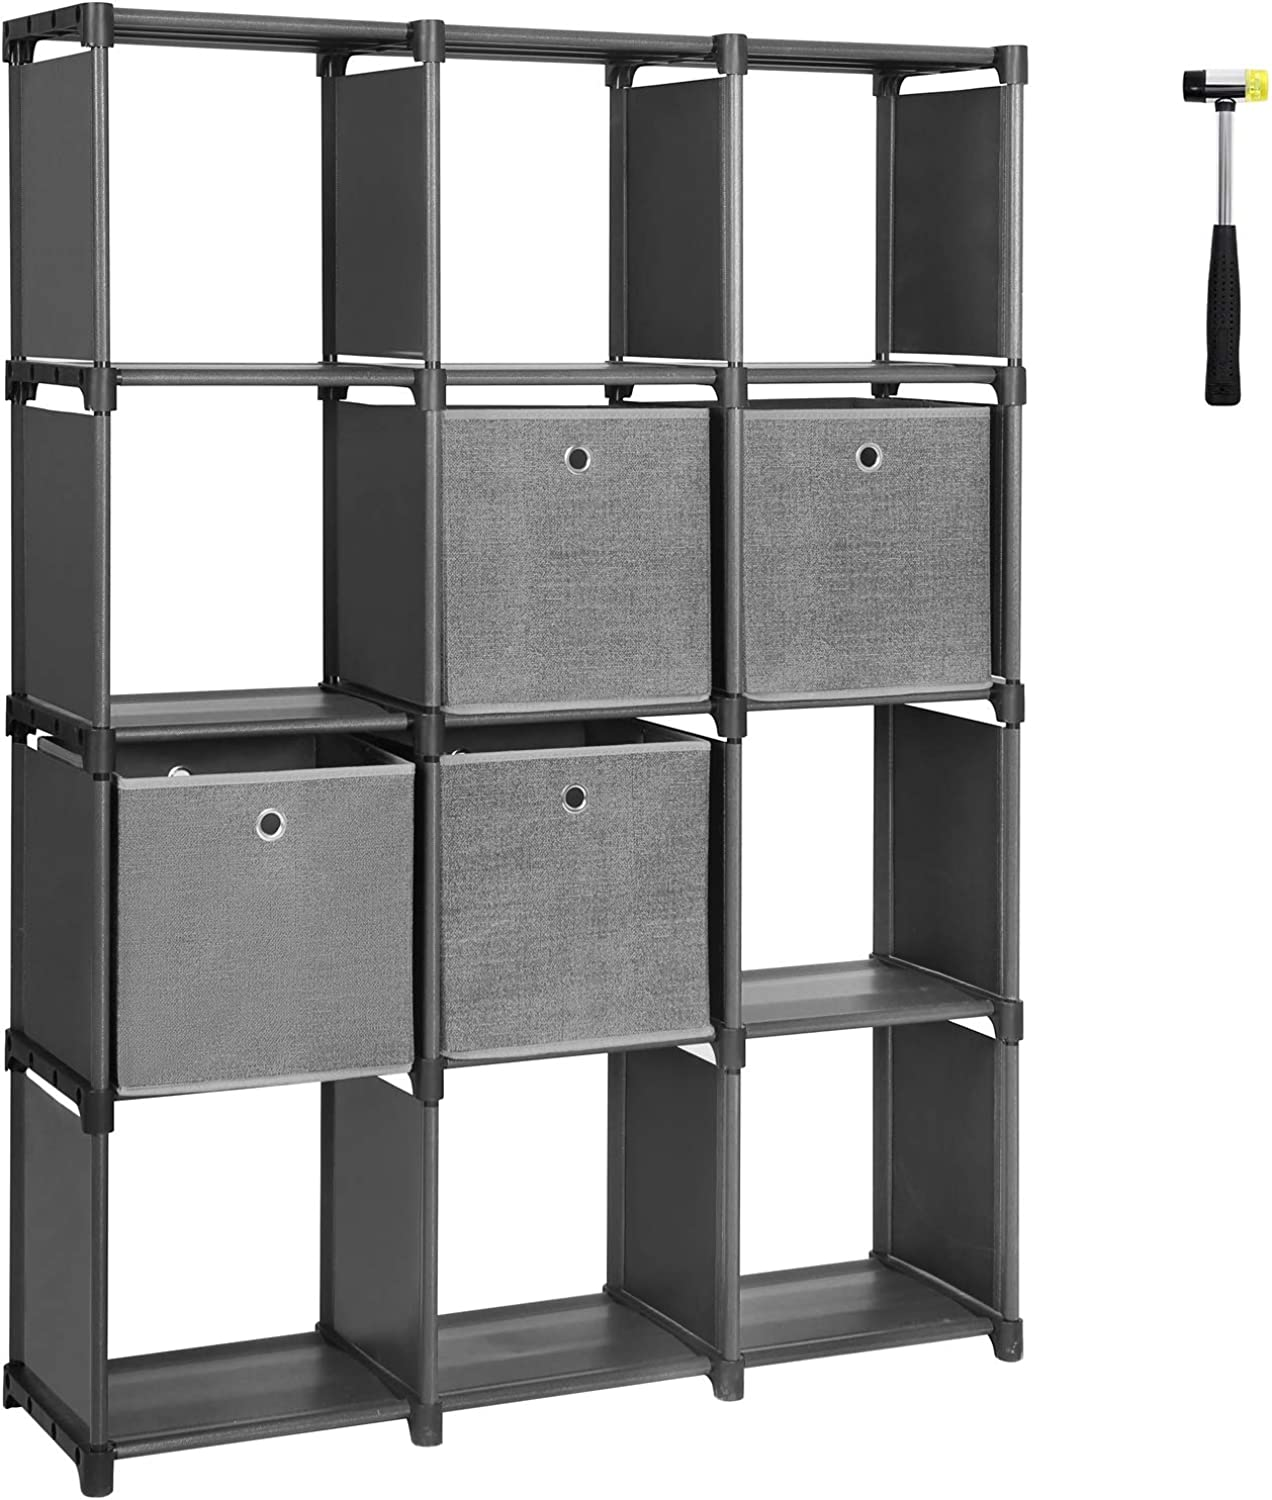 """SONGMICS DIY Cube Storage Unit with Storage Boxes, 12 Cubes Multifunctional Book Shelves and shoes Rack, Modular Sturdy Metal Frame, Includes Rubber Mallet, 55.1""""L x 11.8""""W x 41.3""""H, Black, ULSN34BK"""